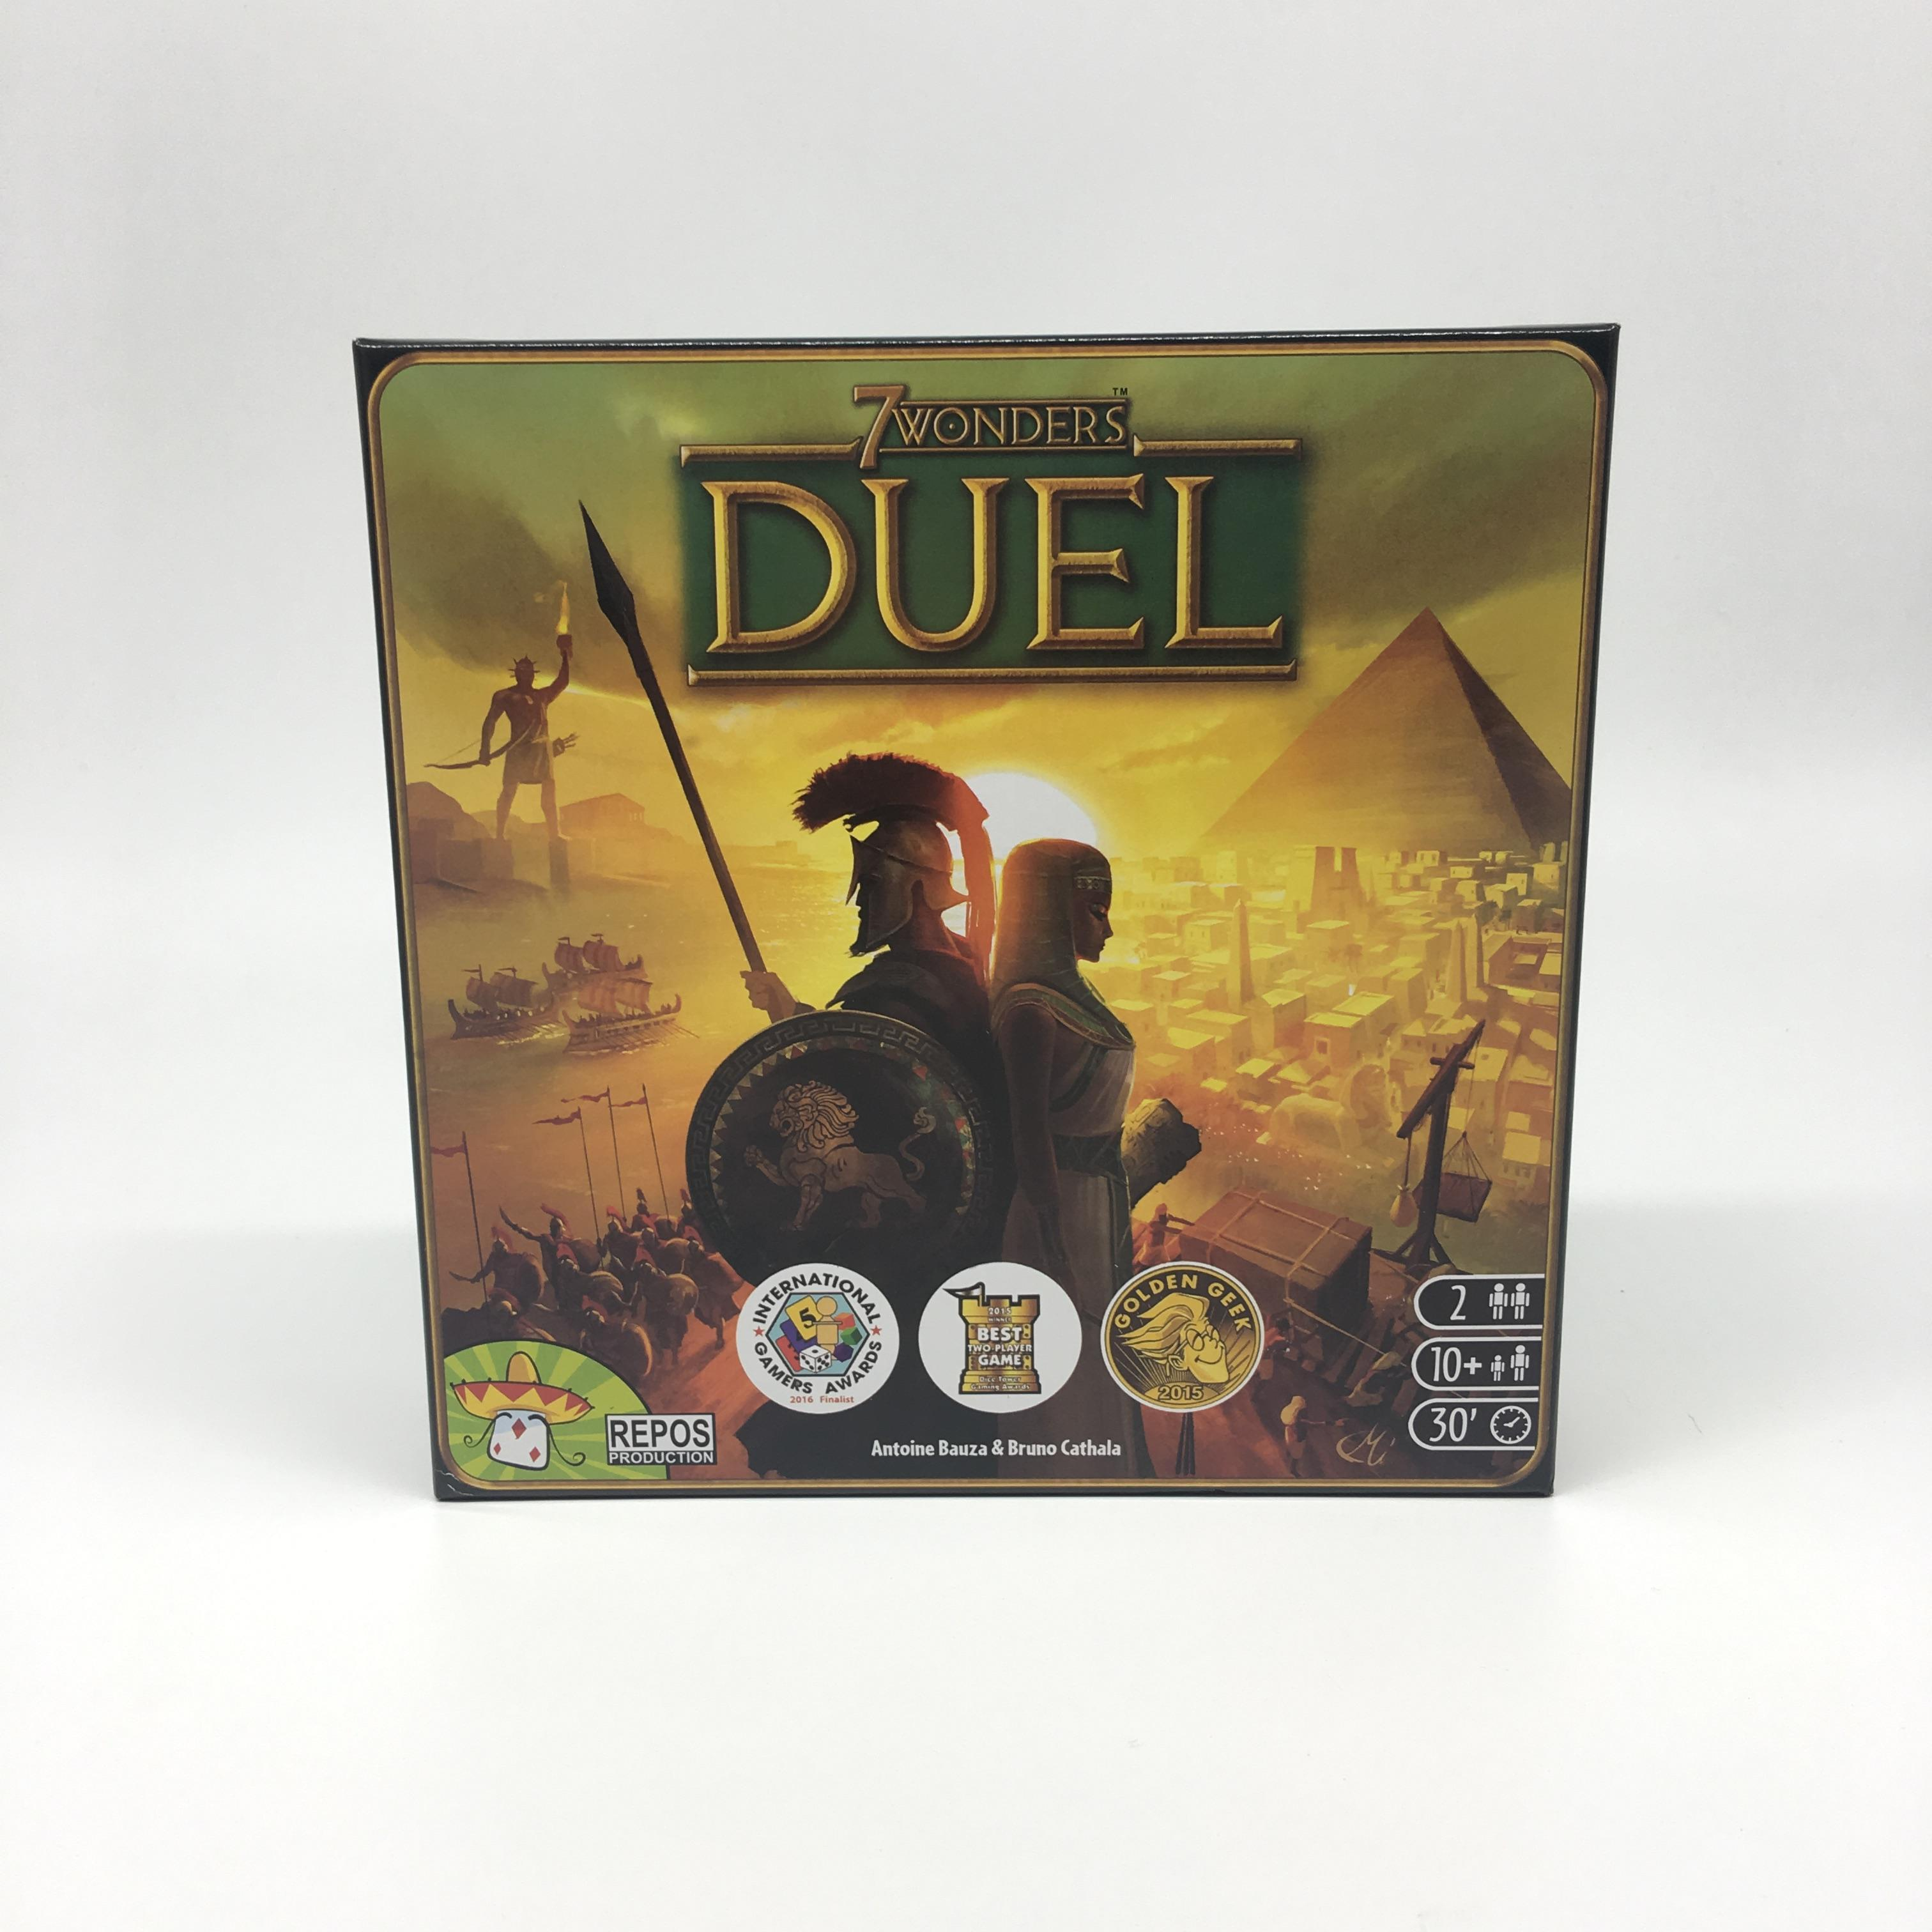 2020 New card game Duel Game English version 7 wonders Board game party family board game kid toys(China)